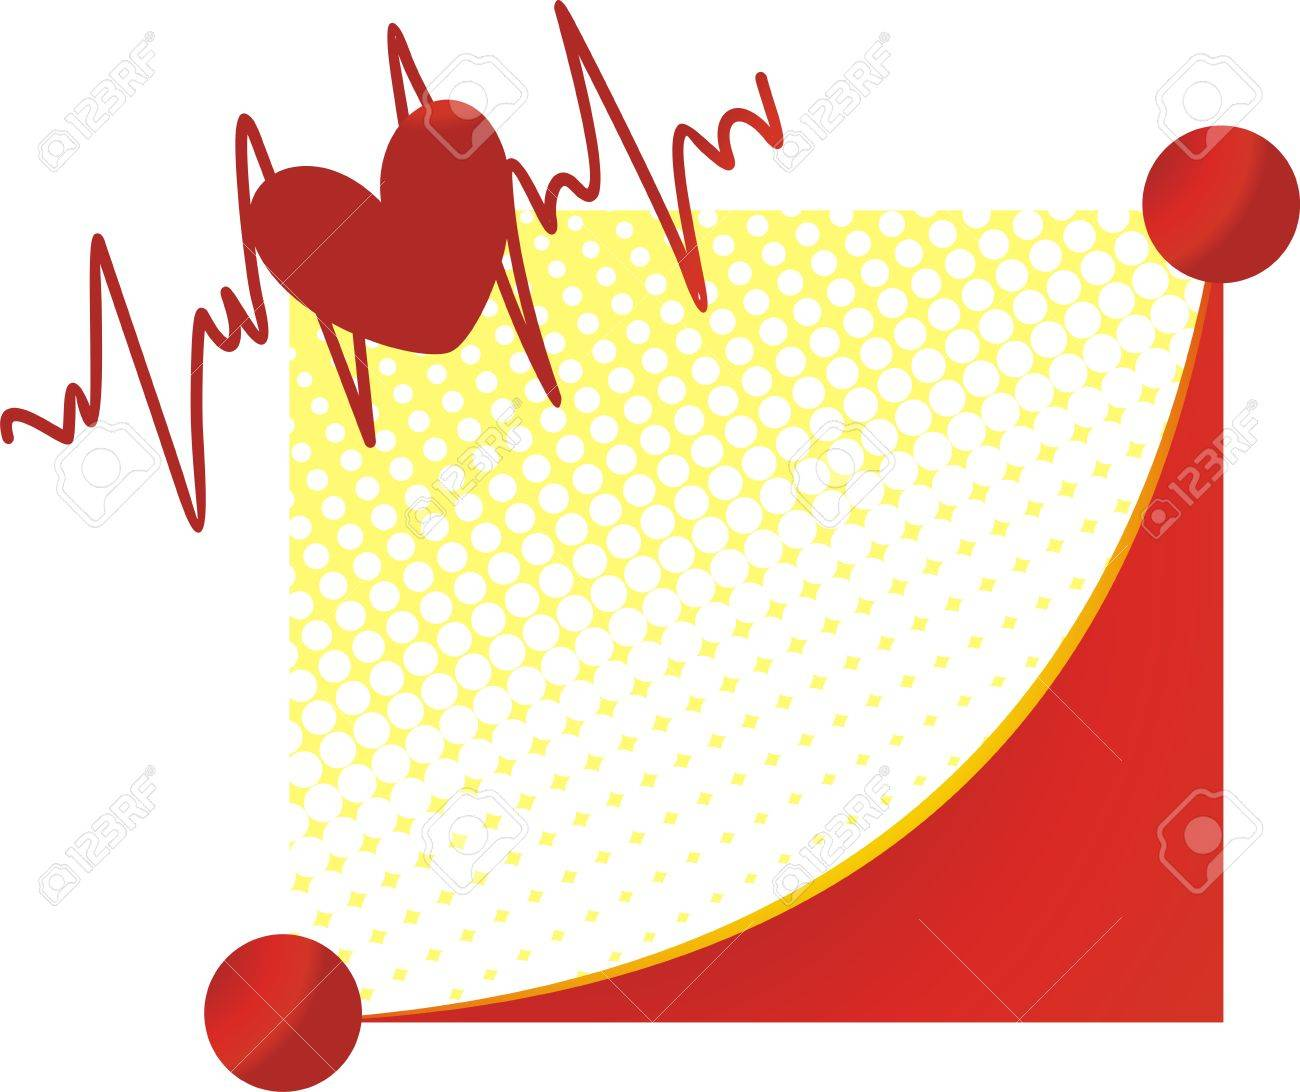 Heart against the cardiogramme and the stylised smile - 4022192